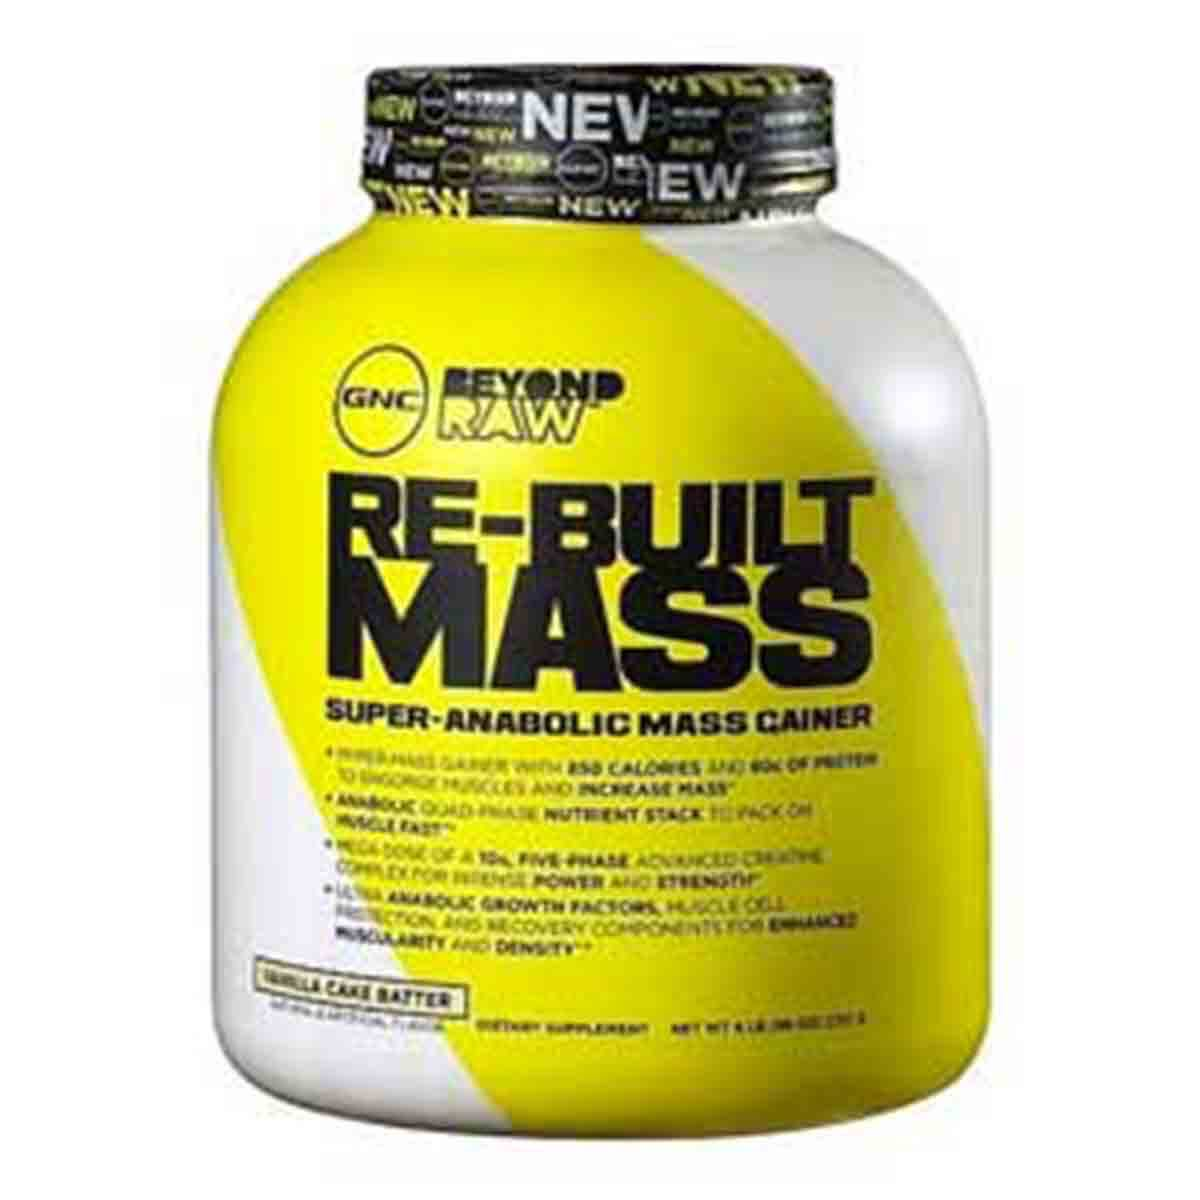 Re-Built Mass